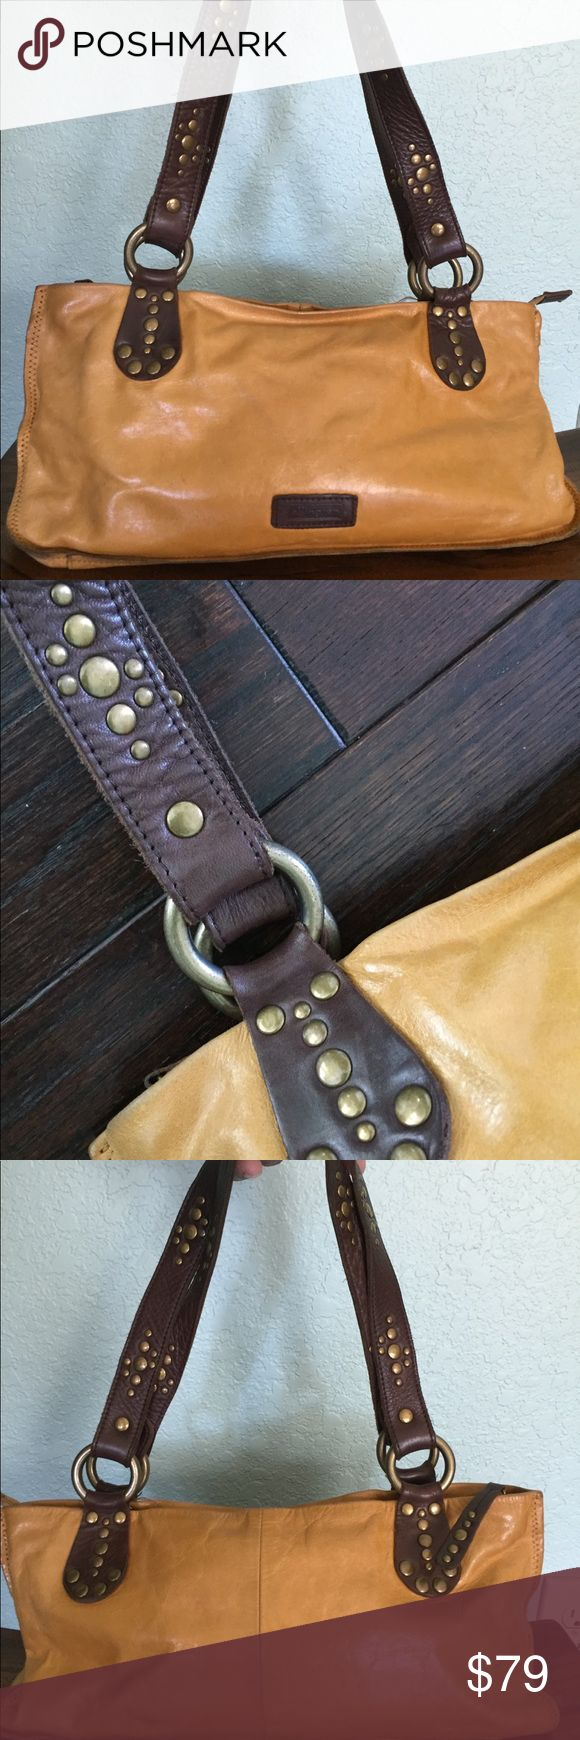 """Ellington soft leather handbag in mustard Soft supple Ellington leather handbag. It has an embellished shoulder/hand strap with three interior pockets and a key fob. In great condition with only minor flaws as shown in pics. Perfect mustard color covers all seasons. Measures 14"""" L x 6.5"""" H Ellington Bags"""